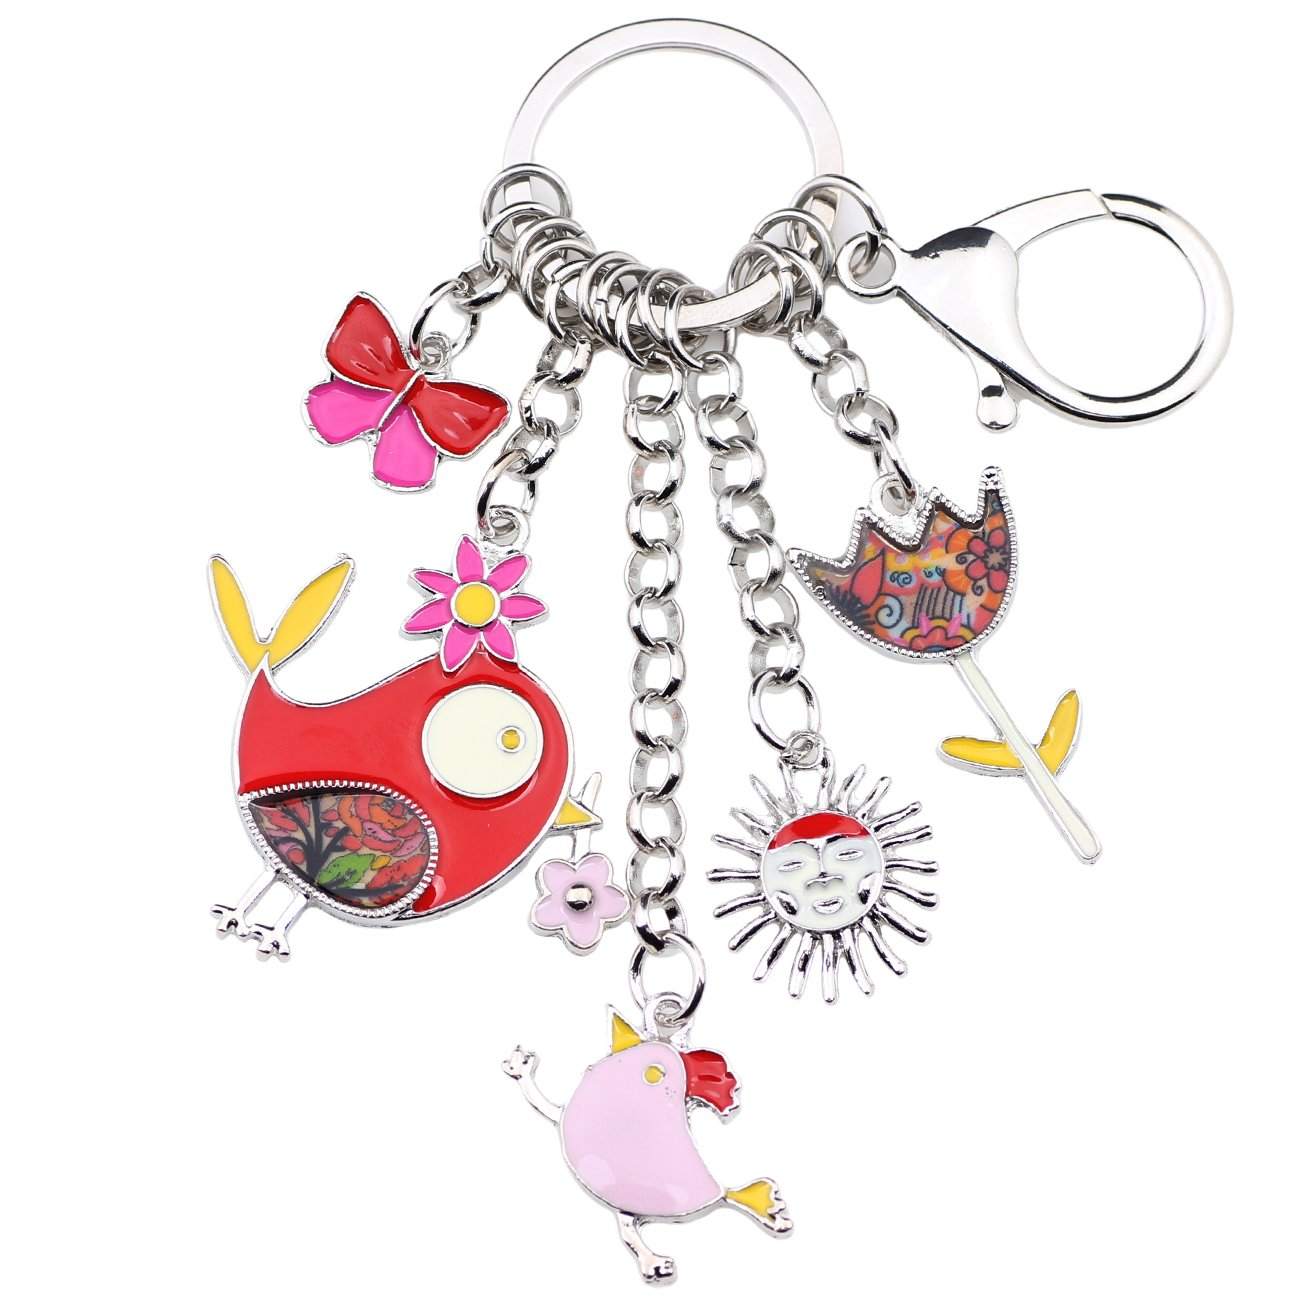 Bonsny Enamel Zinc Alloy Birds Flower Butterfly Key Chains Keyrings For Women Handbag Car Key Charms (Red)